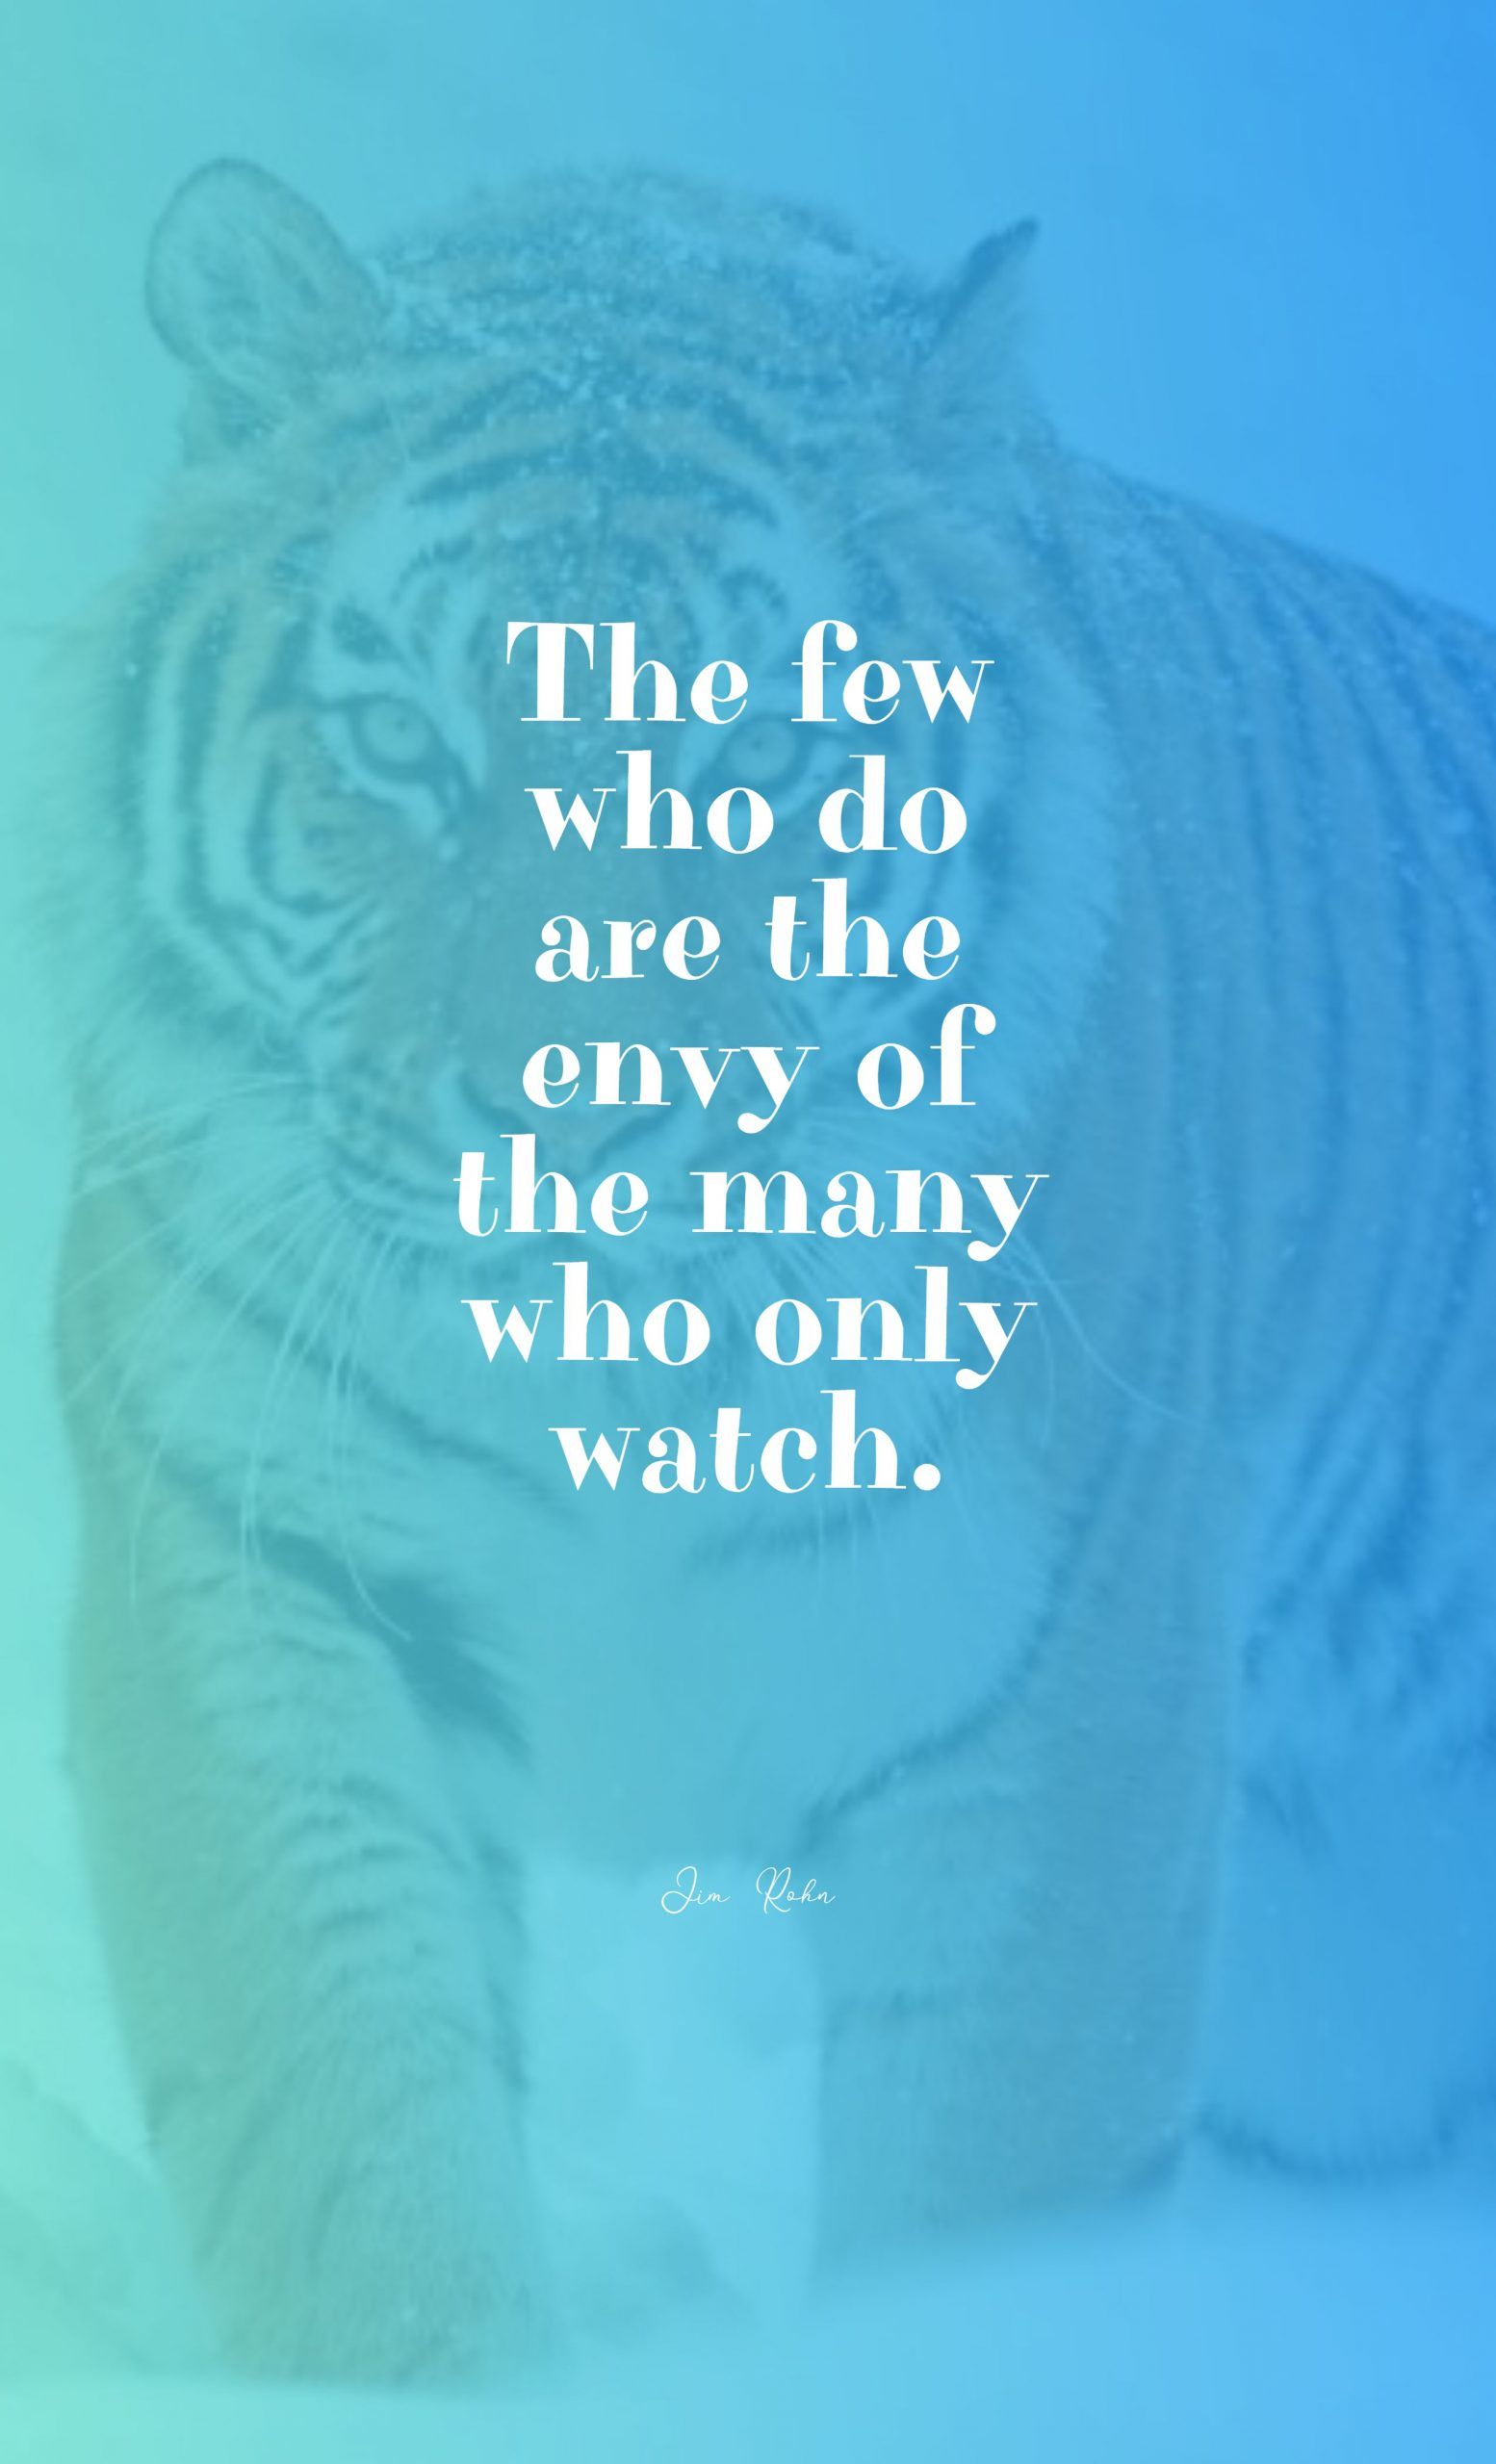 Quotes image of The few who do are the envy of the many who only watch.